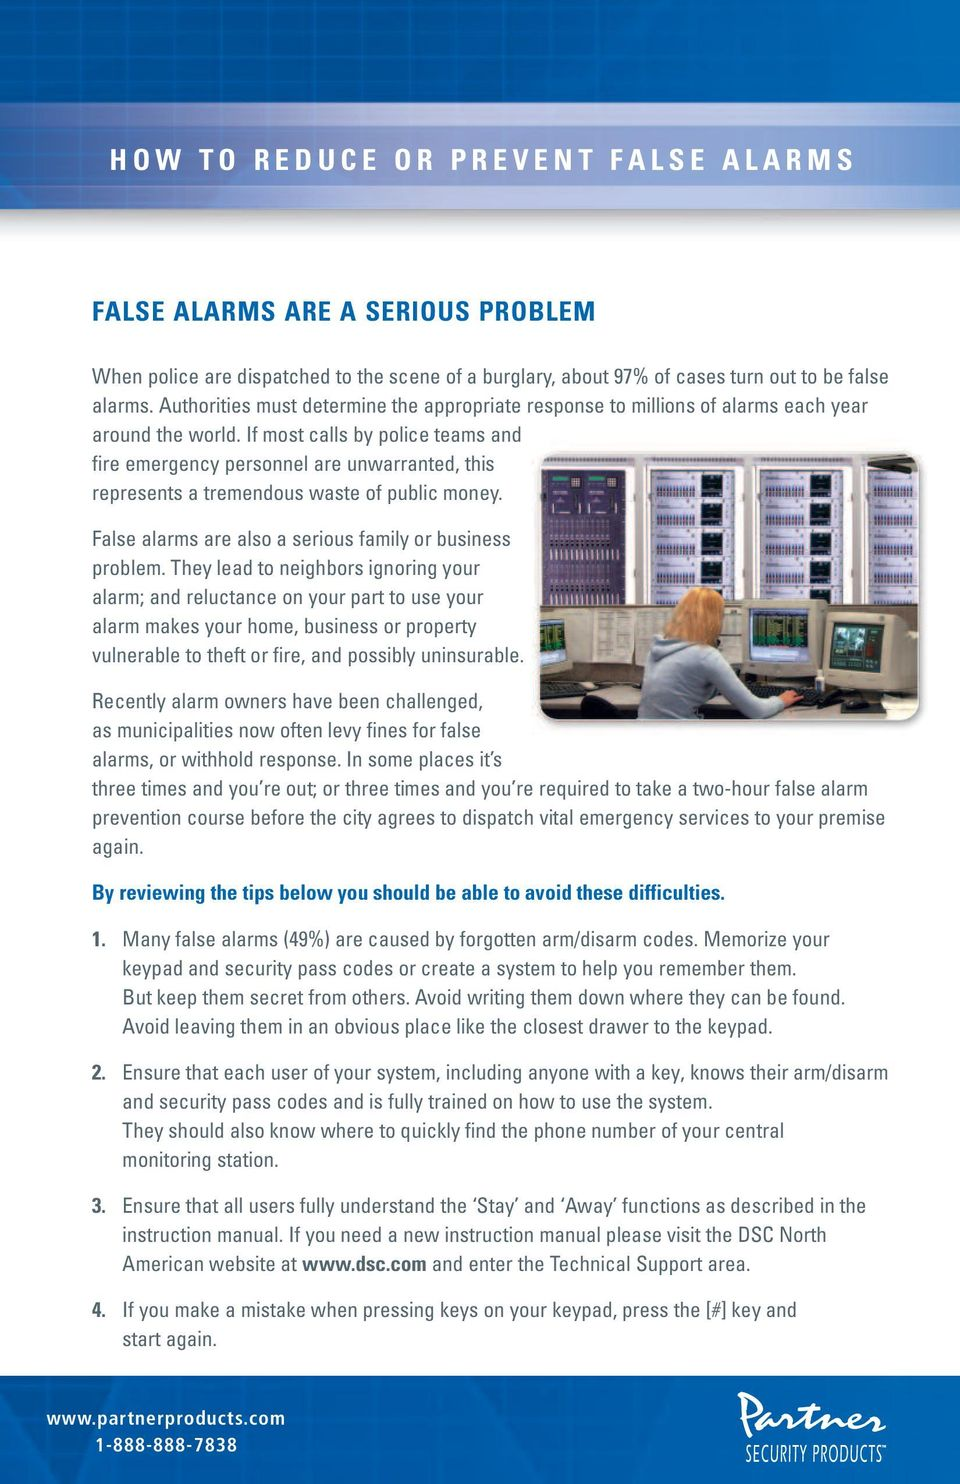 If most calls by police teams and fire emergency personnel are unwarranted, this represents a tremendous waste of public money. False alarms are also a serious family or business problem.